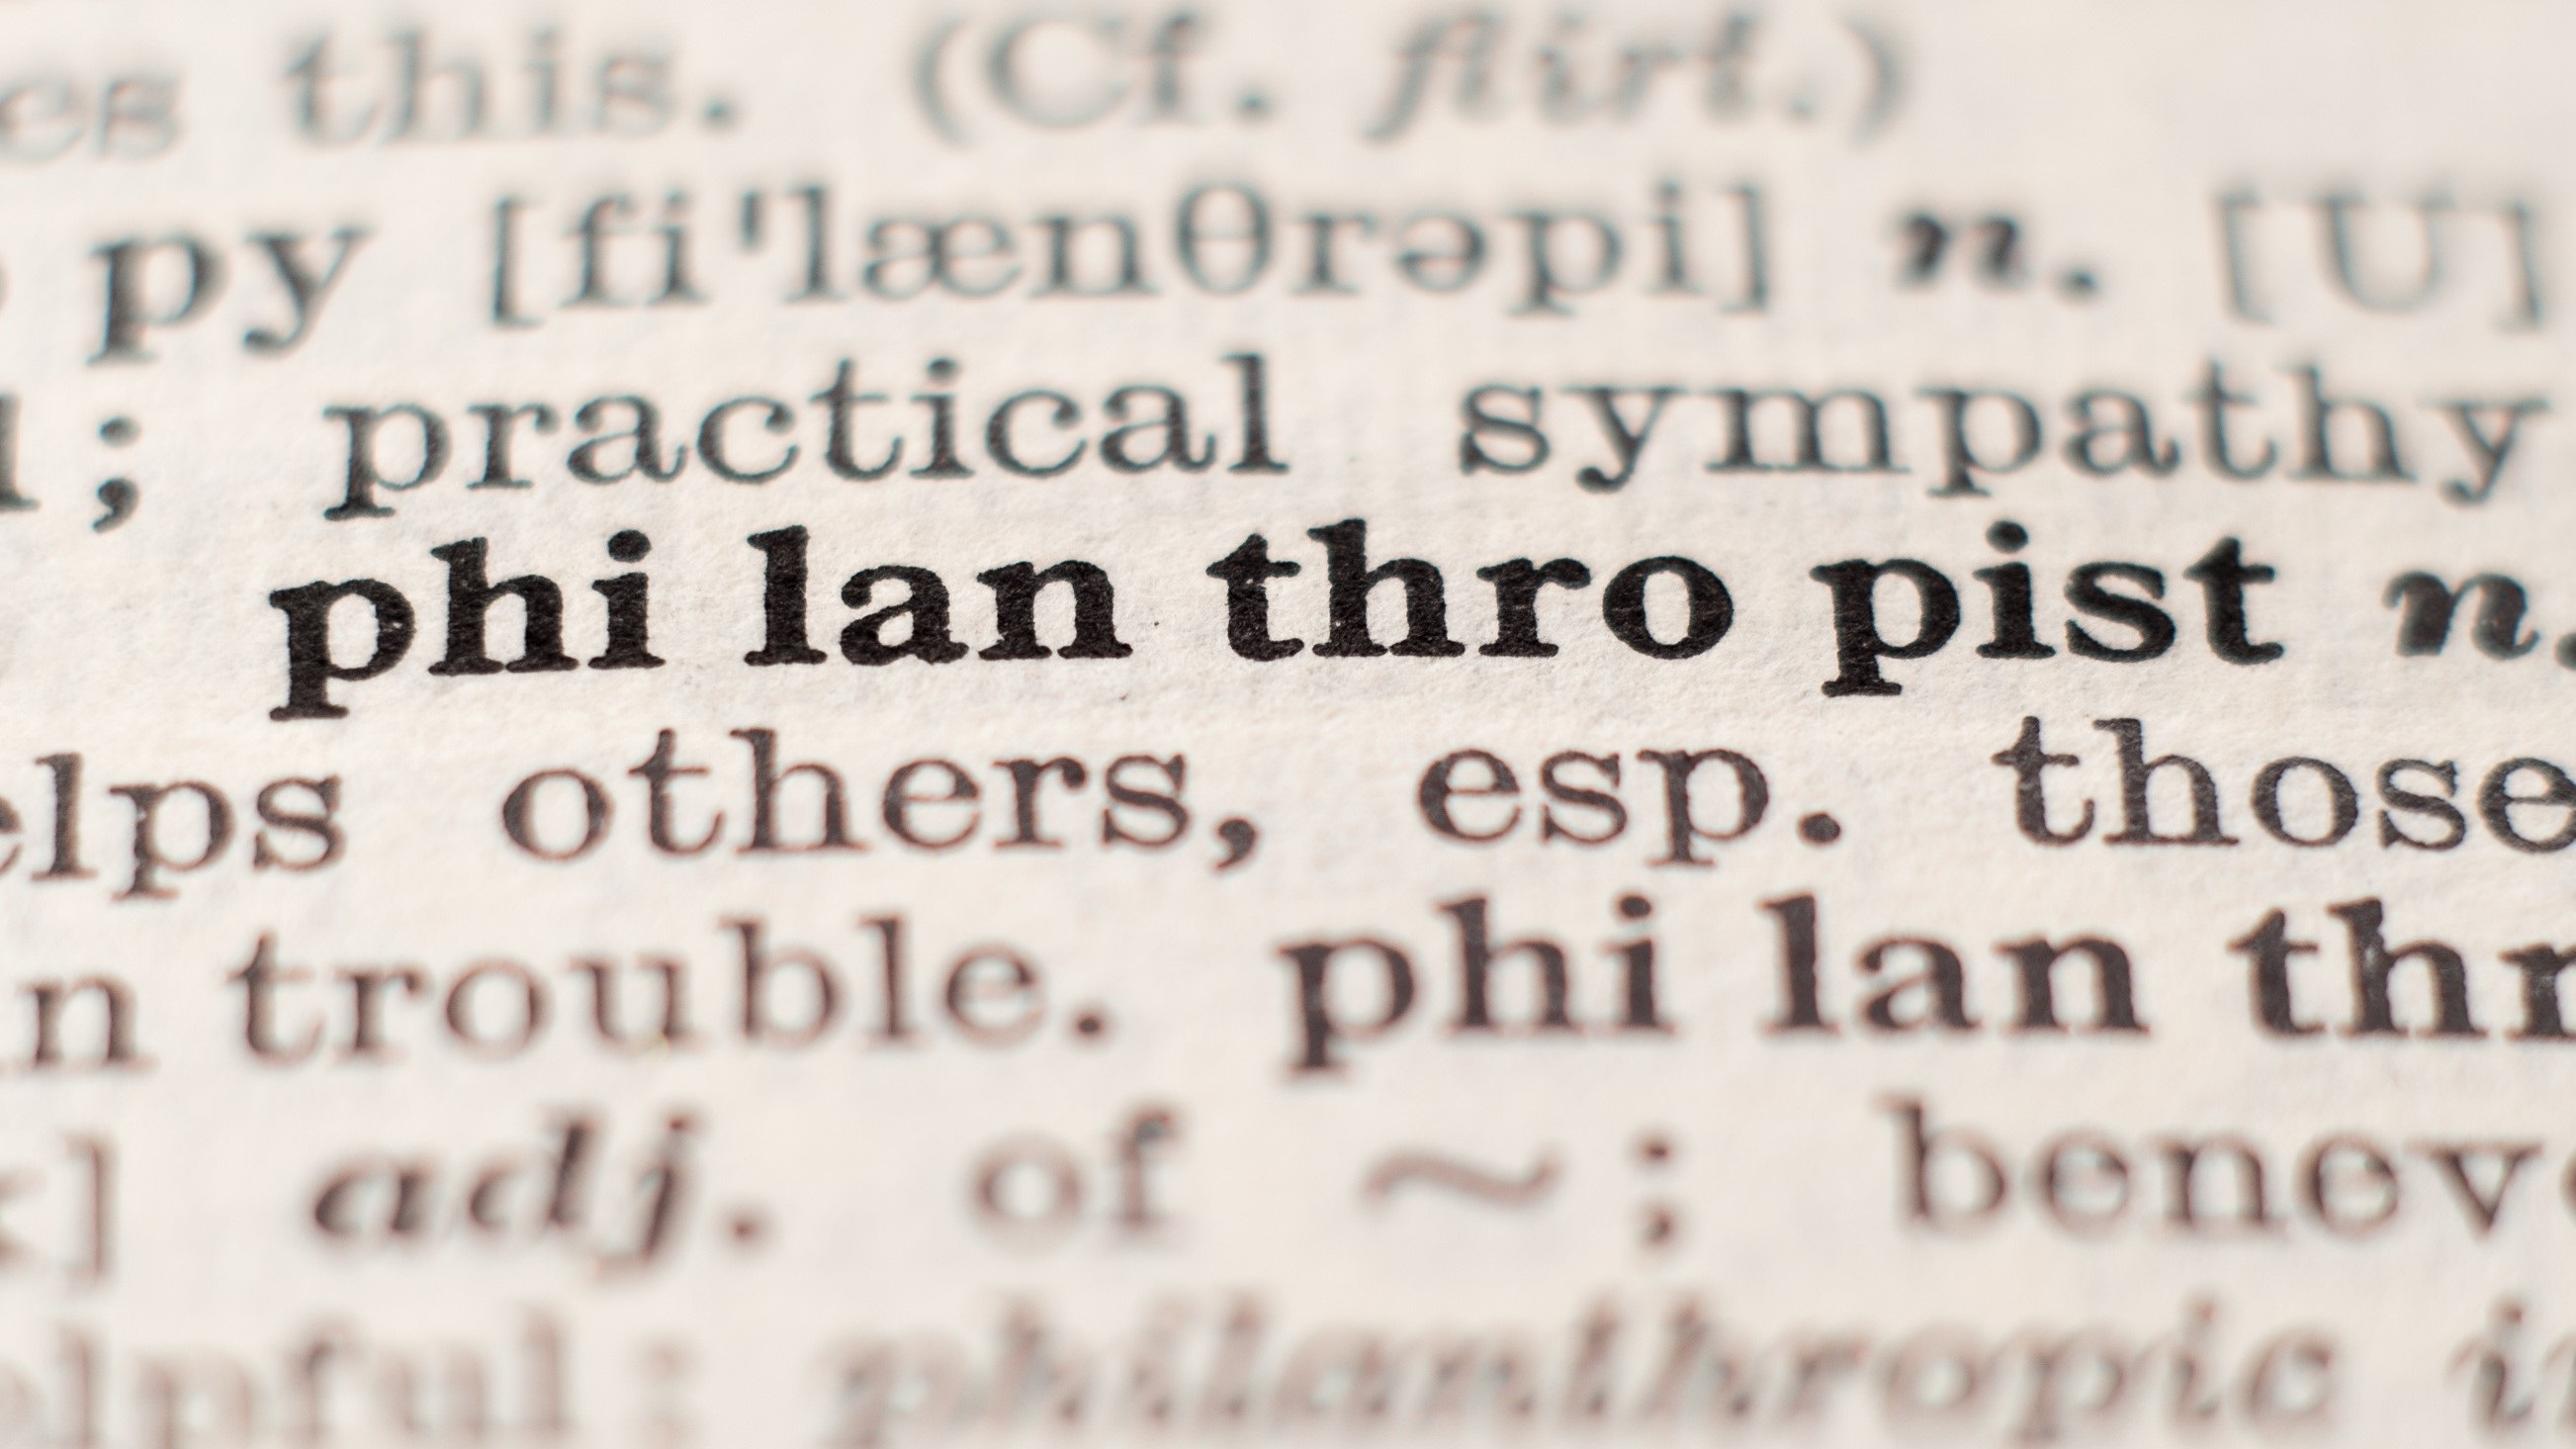 Dictionary definition showing the word philanthropist